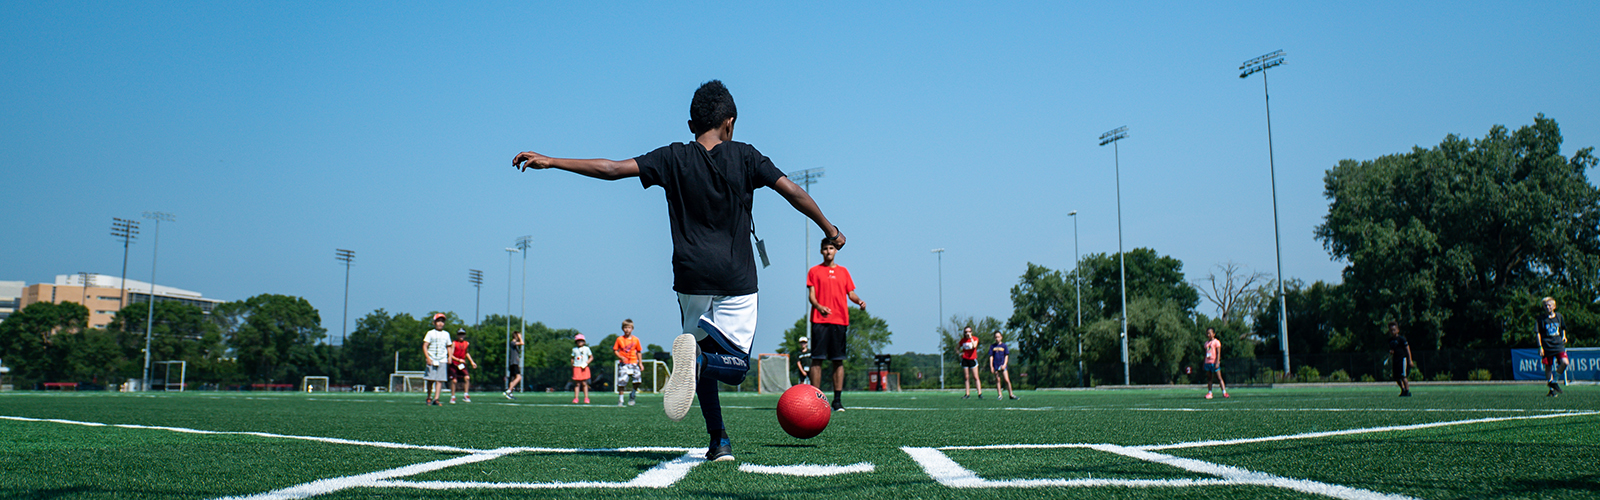 A photo of a child kicking a ball in a game of kickball.